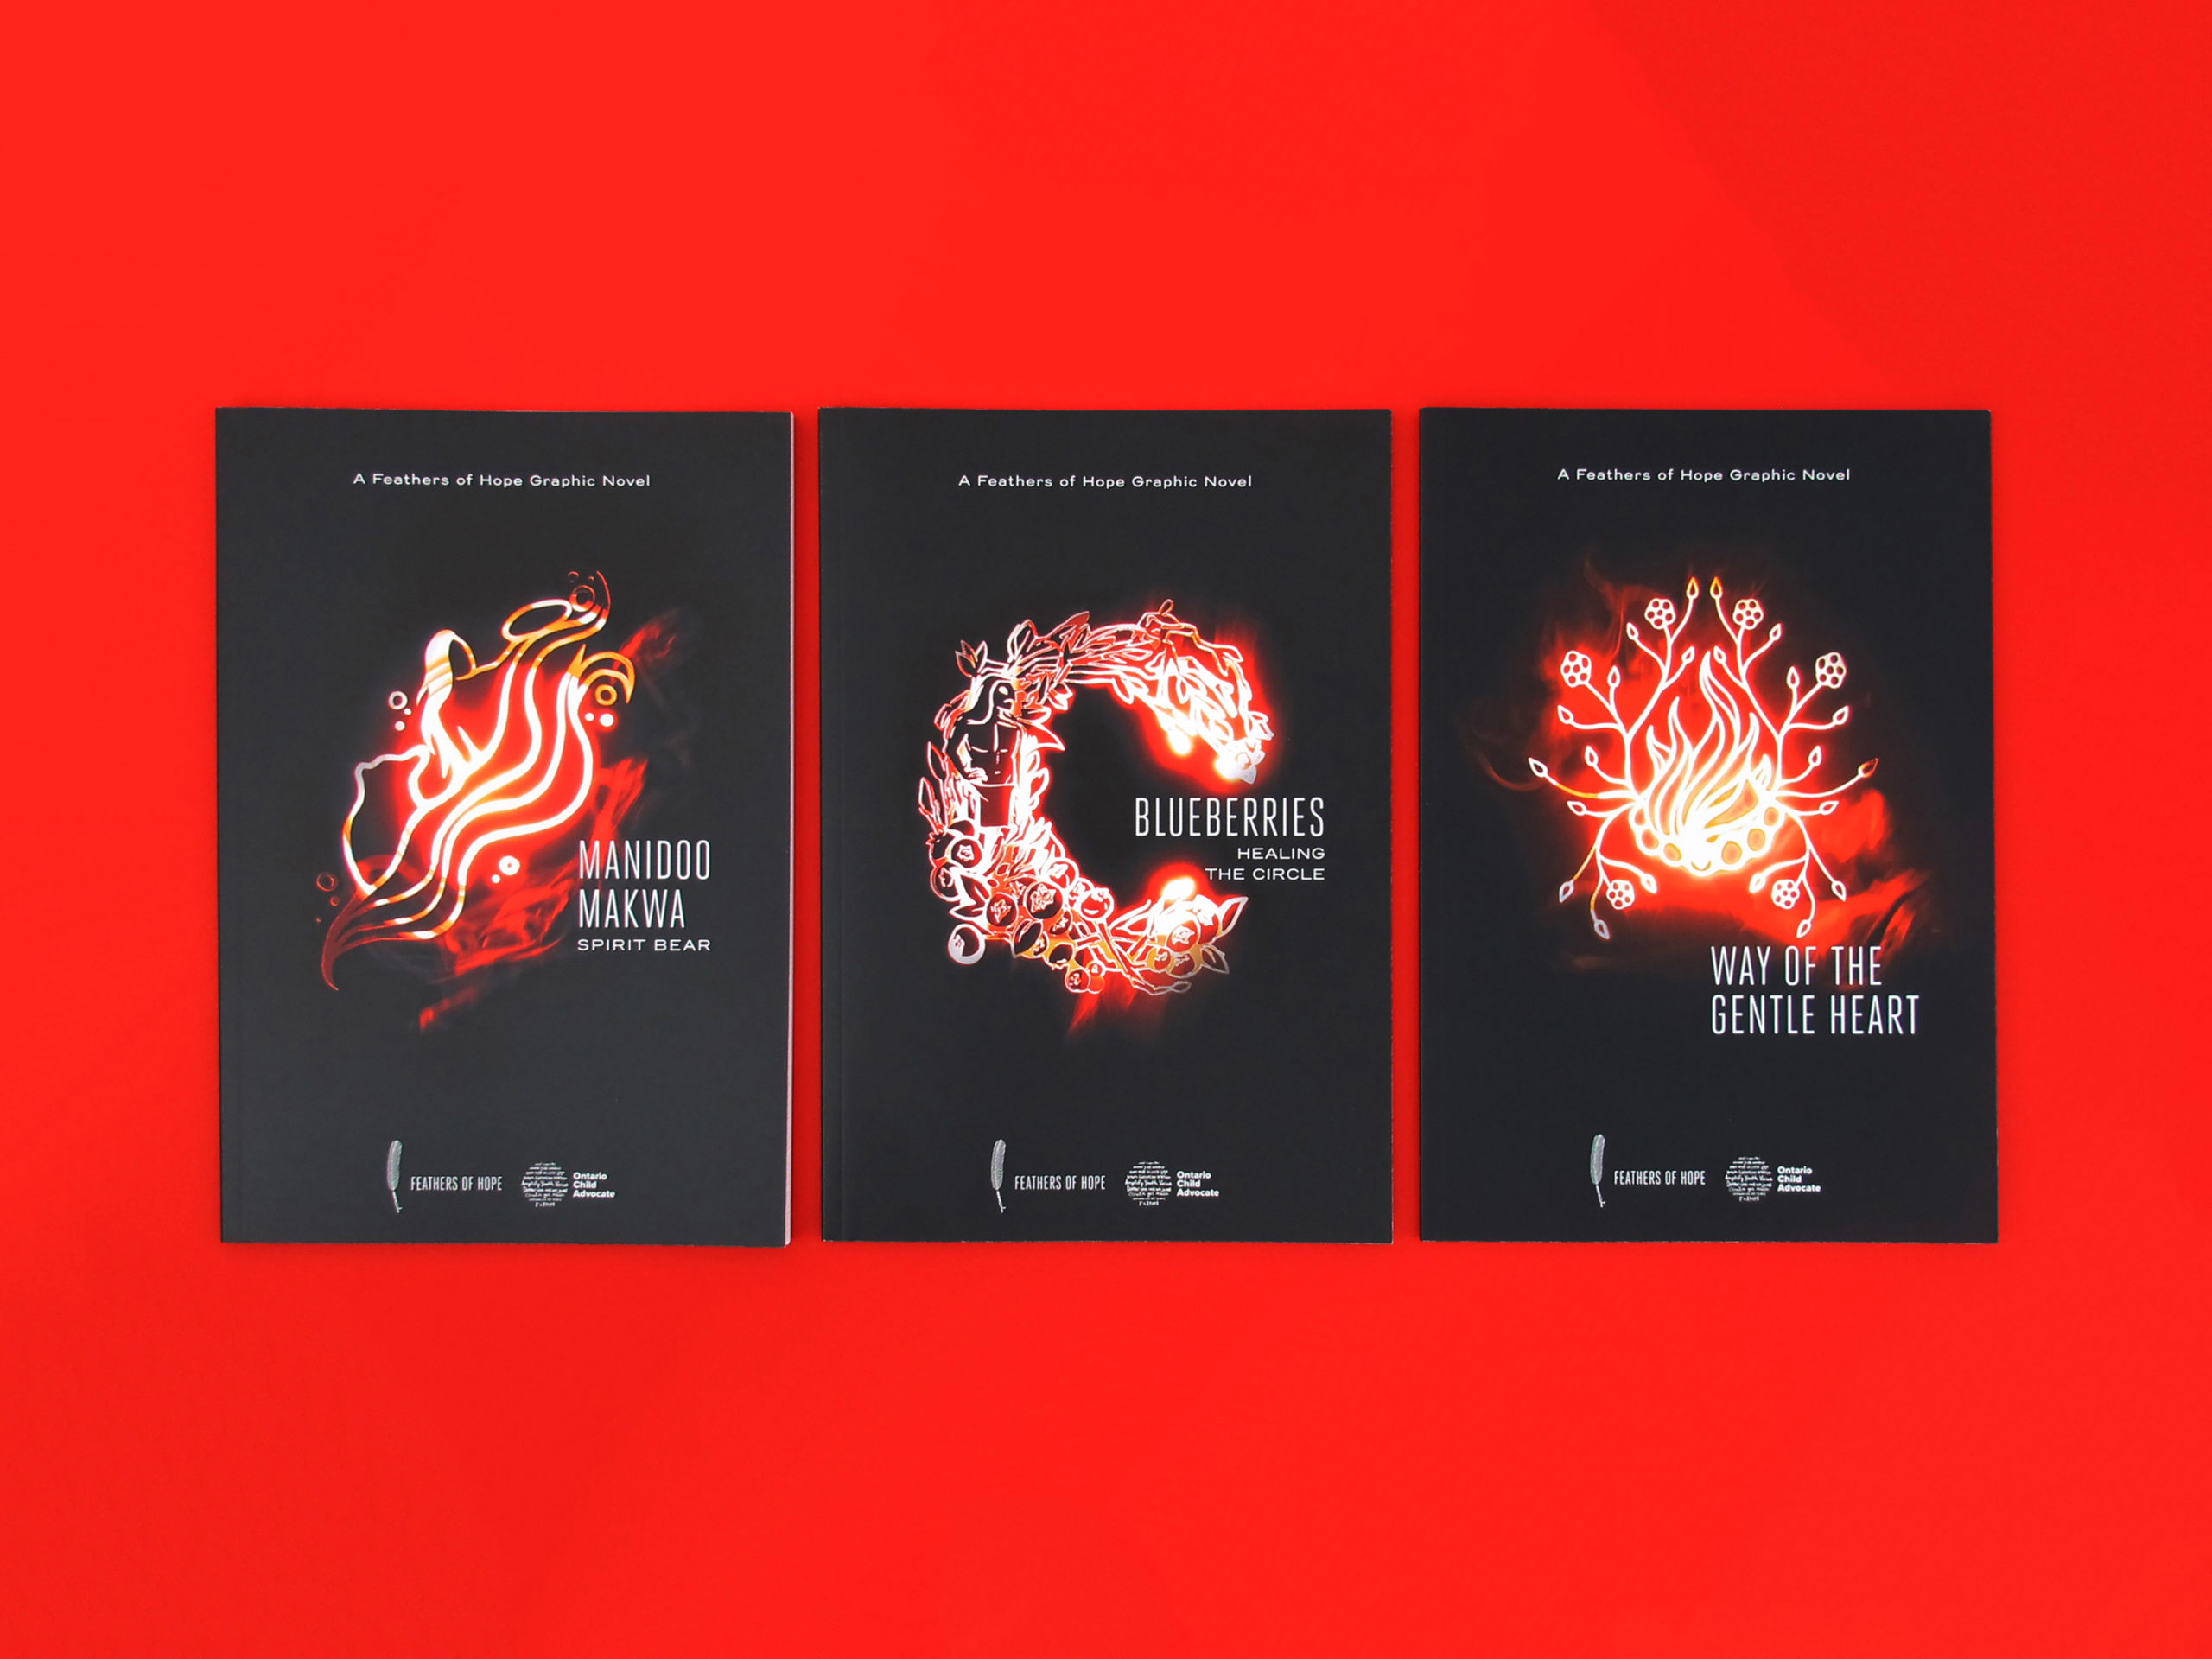 Photo of the Feathers of Hope graphic novels. The image shows a top-view of the three books, displayed in a row and sitting against a bright red background.